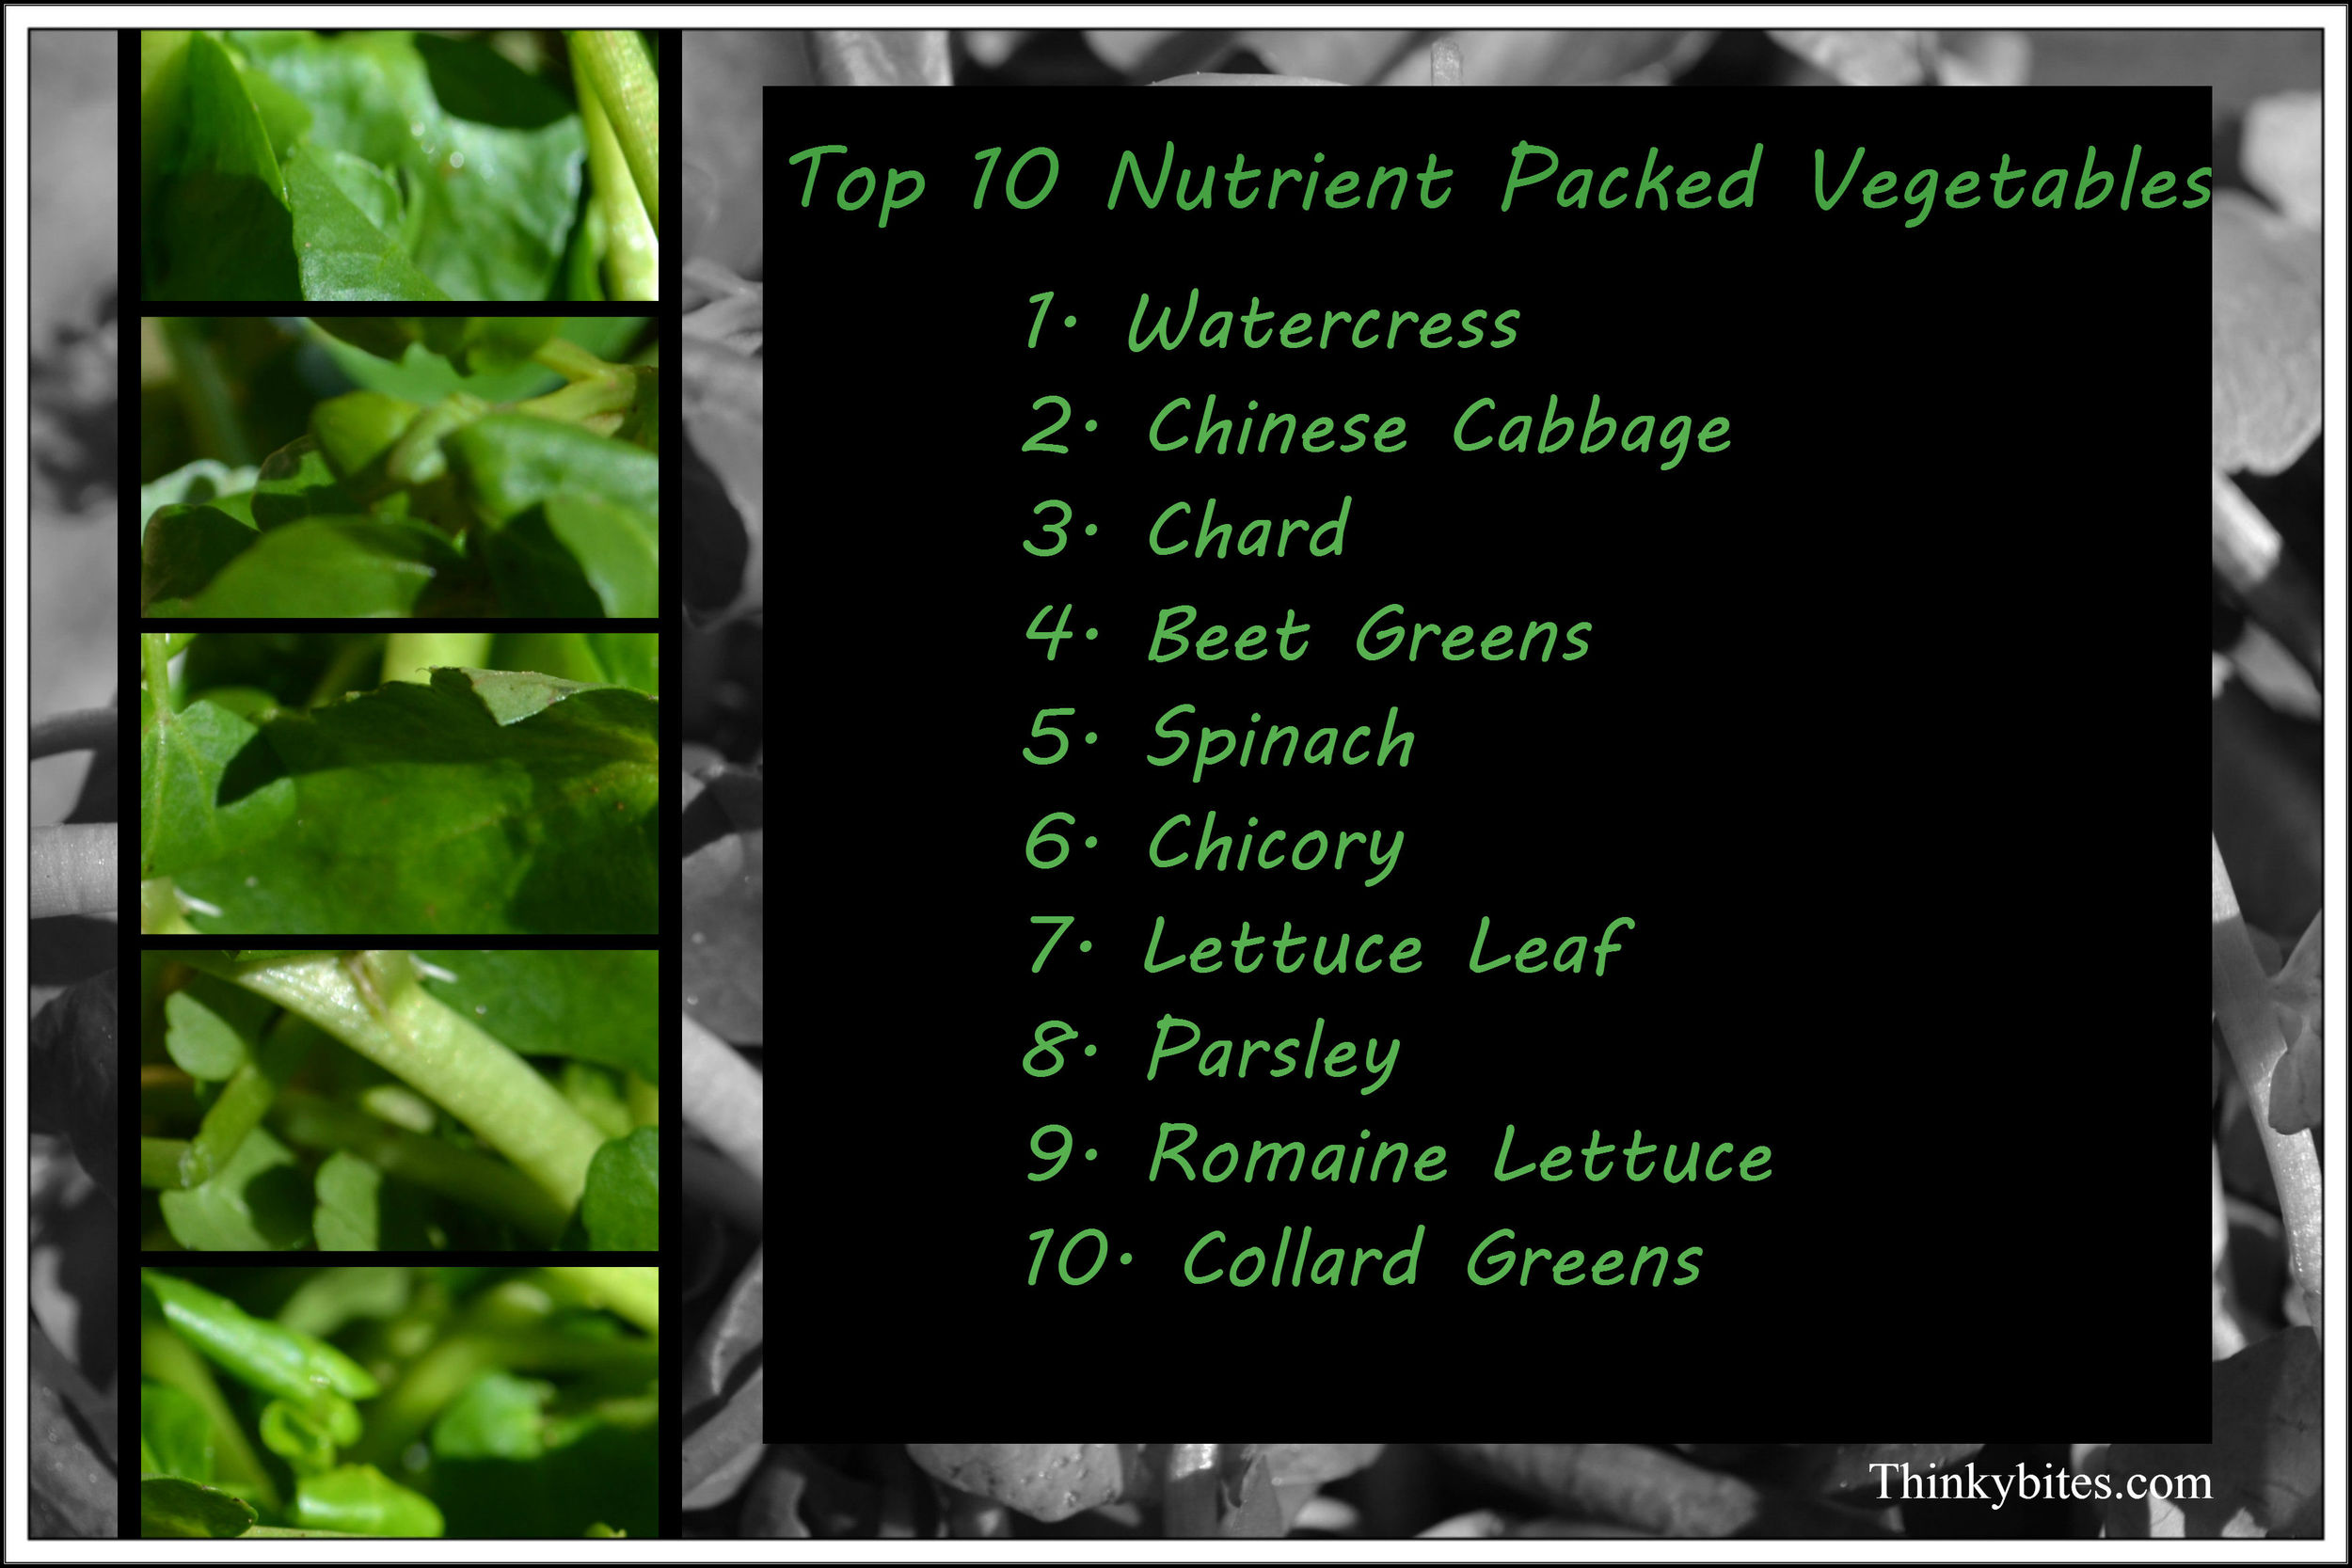 The colour green dominates the top 10 list of powerhouse fruits and vegetables. These 10 veggies packed in the greatest concentration of the 17 nutrients tested in the study.